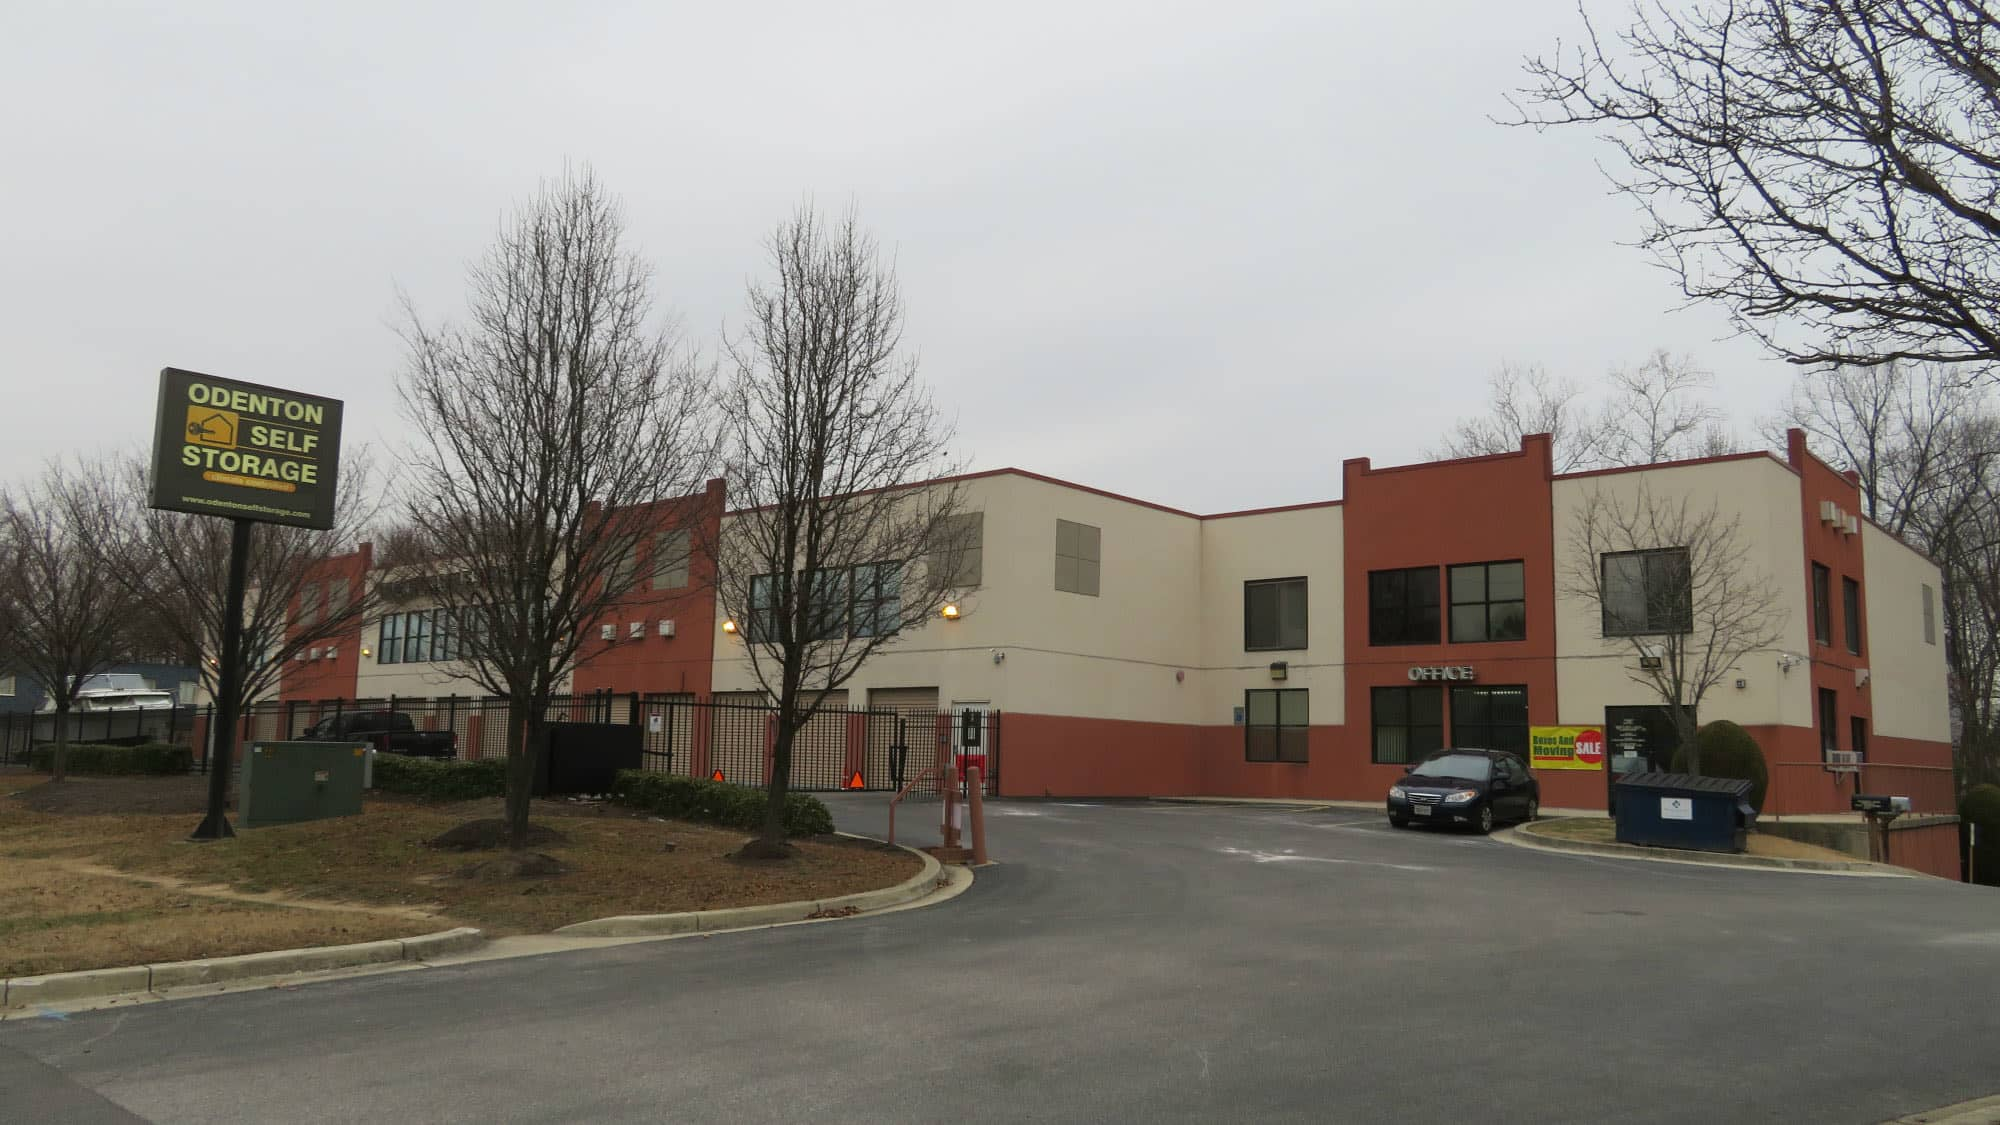 Exterior of Odenton Self Storage in Odenton, Maryland